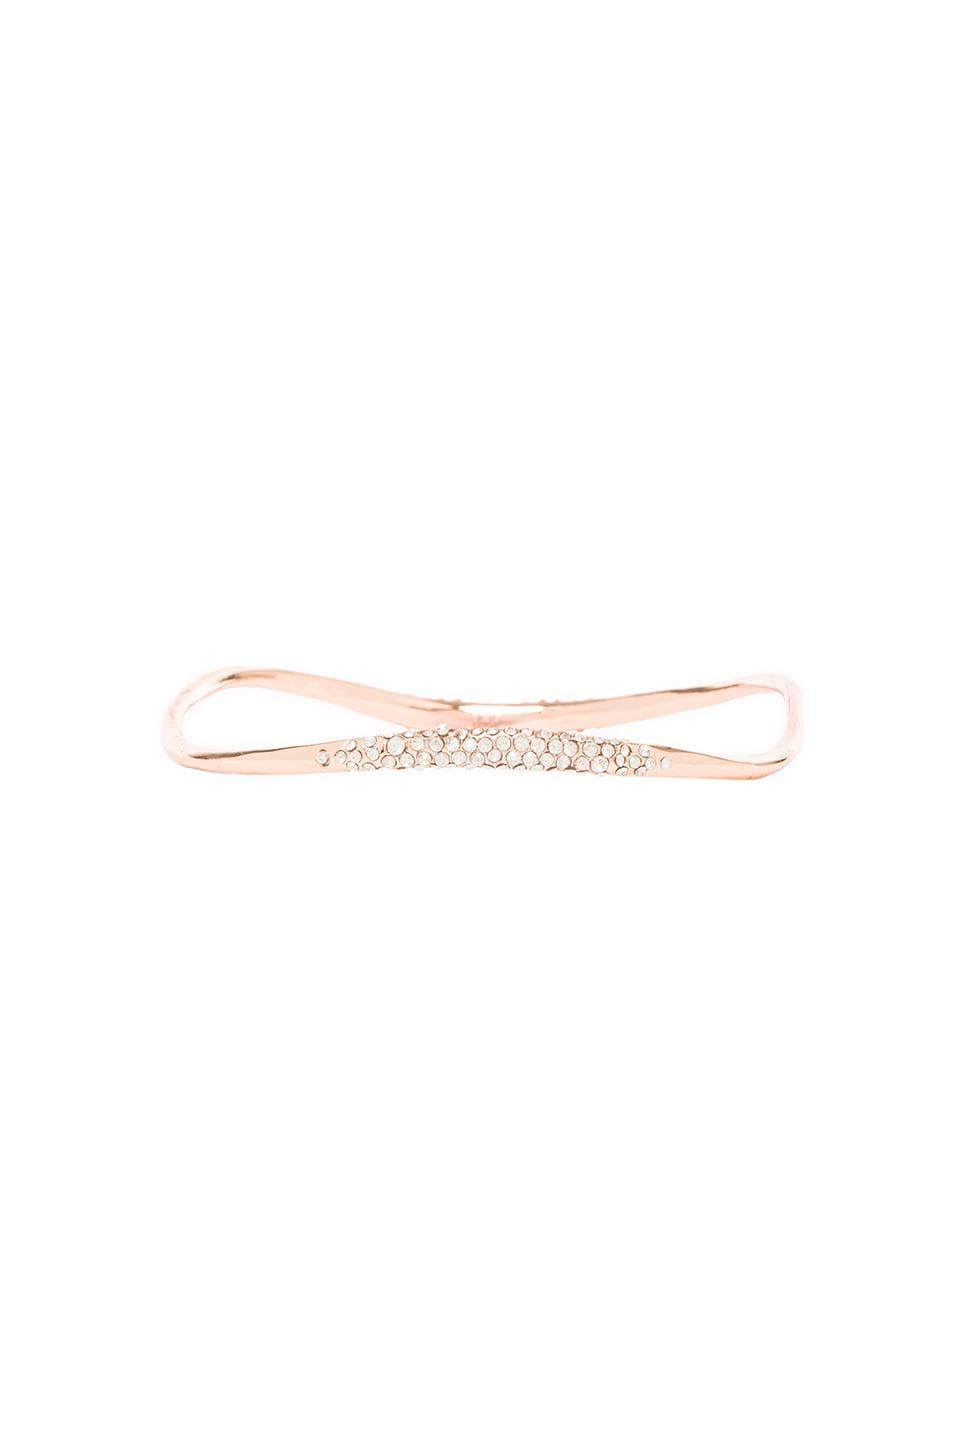 Alexis Bittar Thin Pave Bangle in Rose Gold